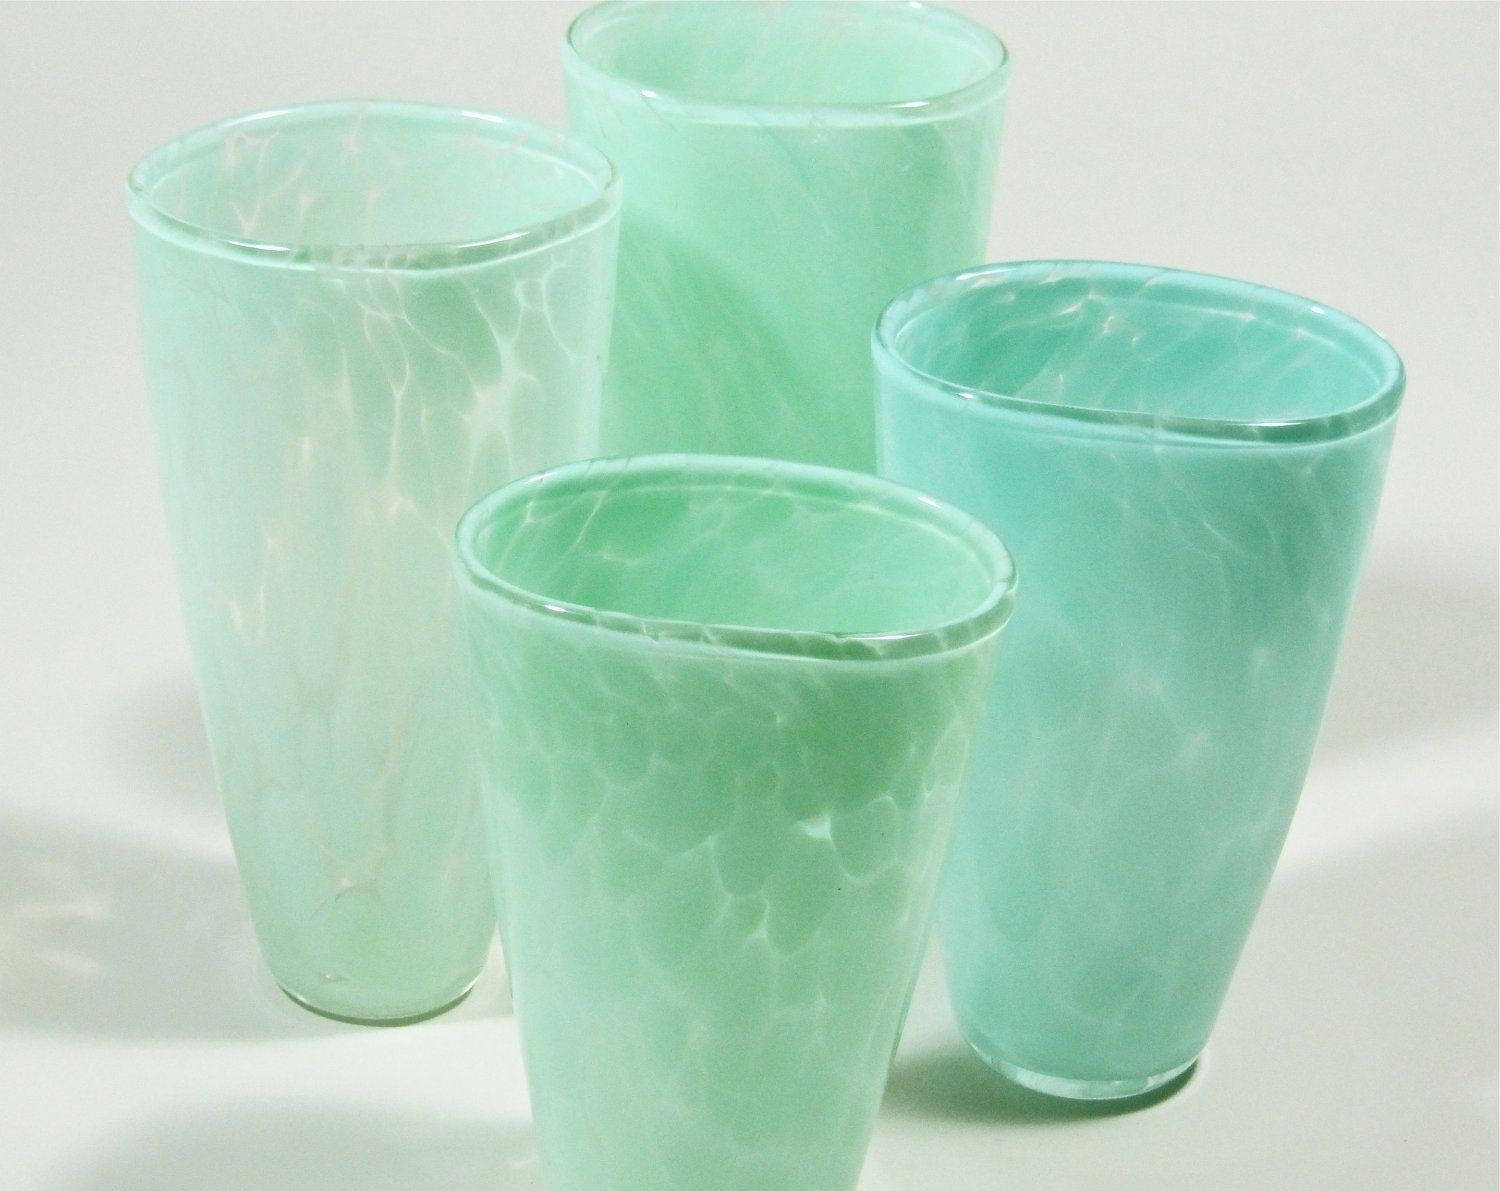 Hand crafted celadon glass vase flat sided by david jacobson glass custom made celadon glass vase flat sided reviewsmspy